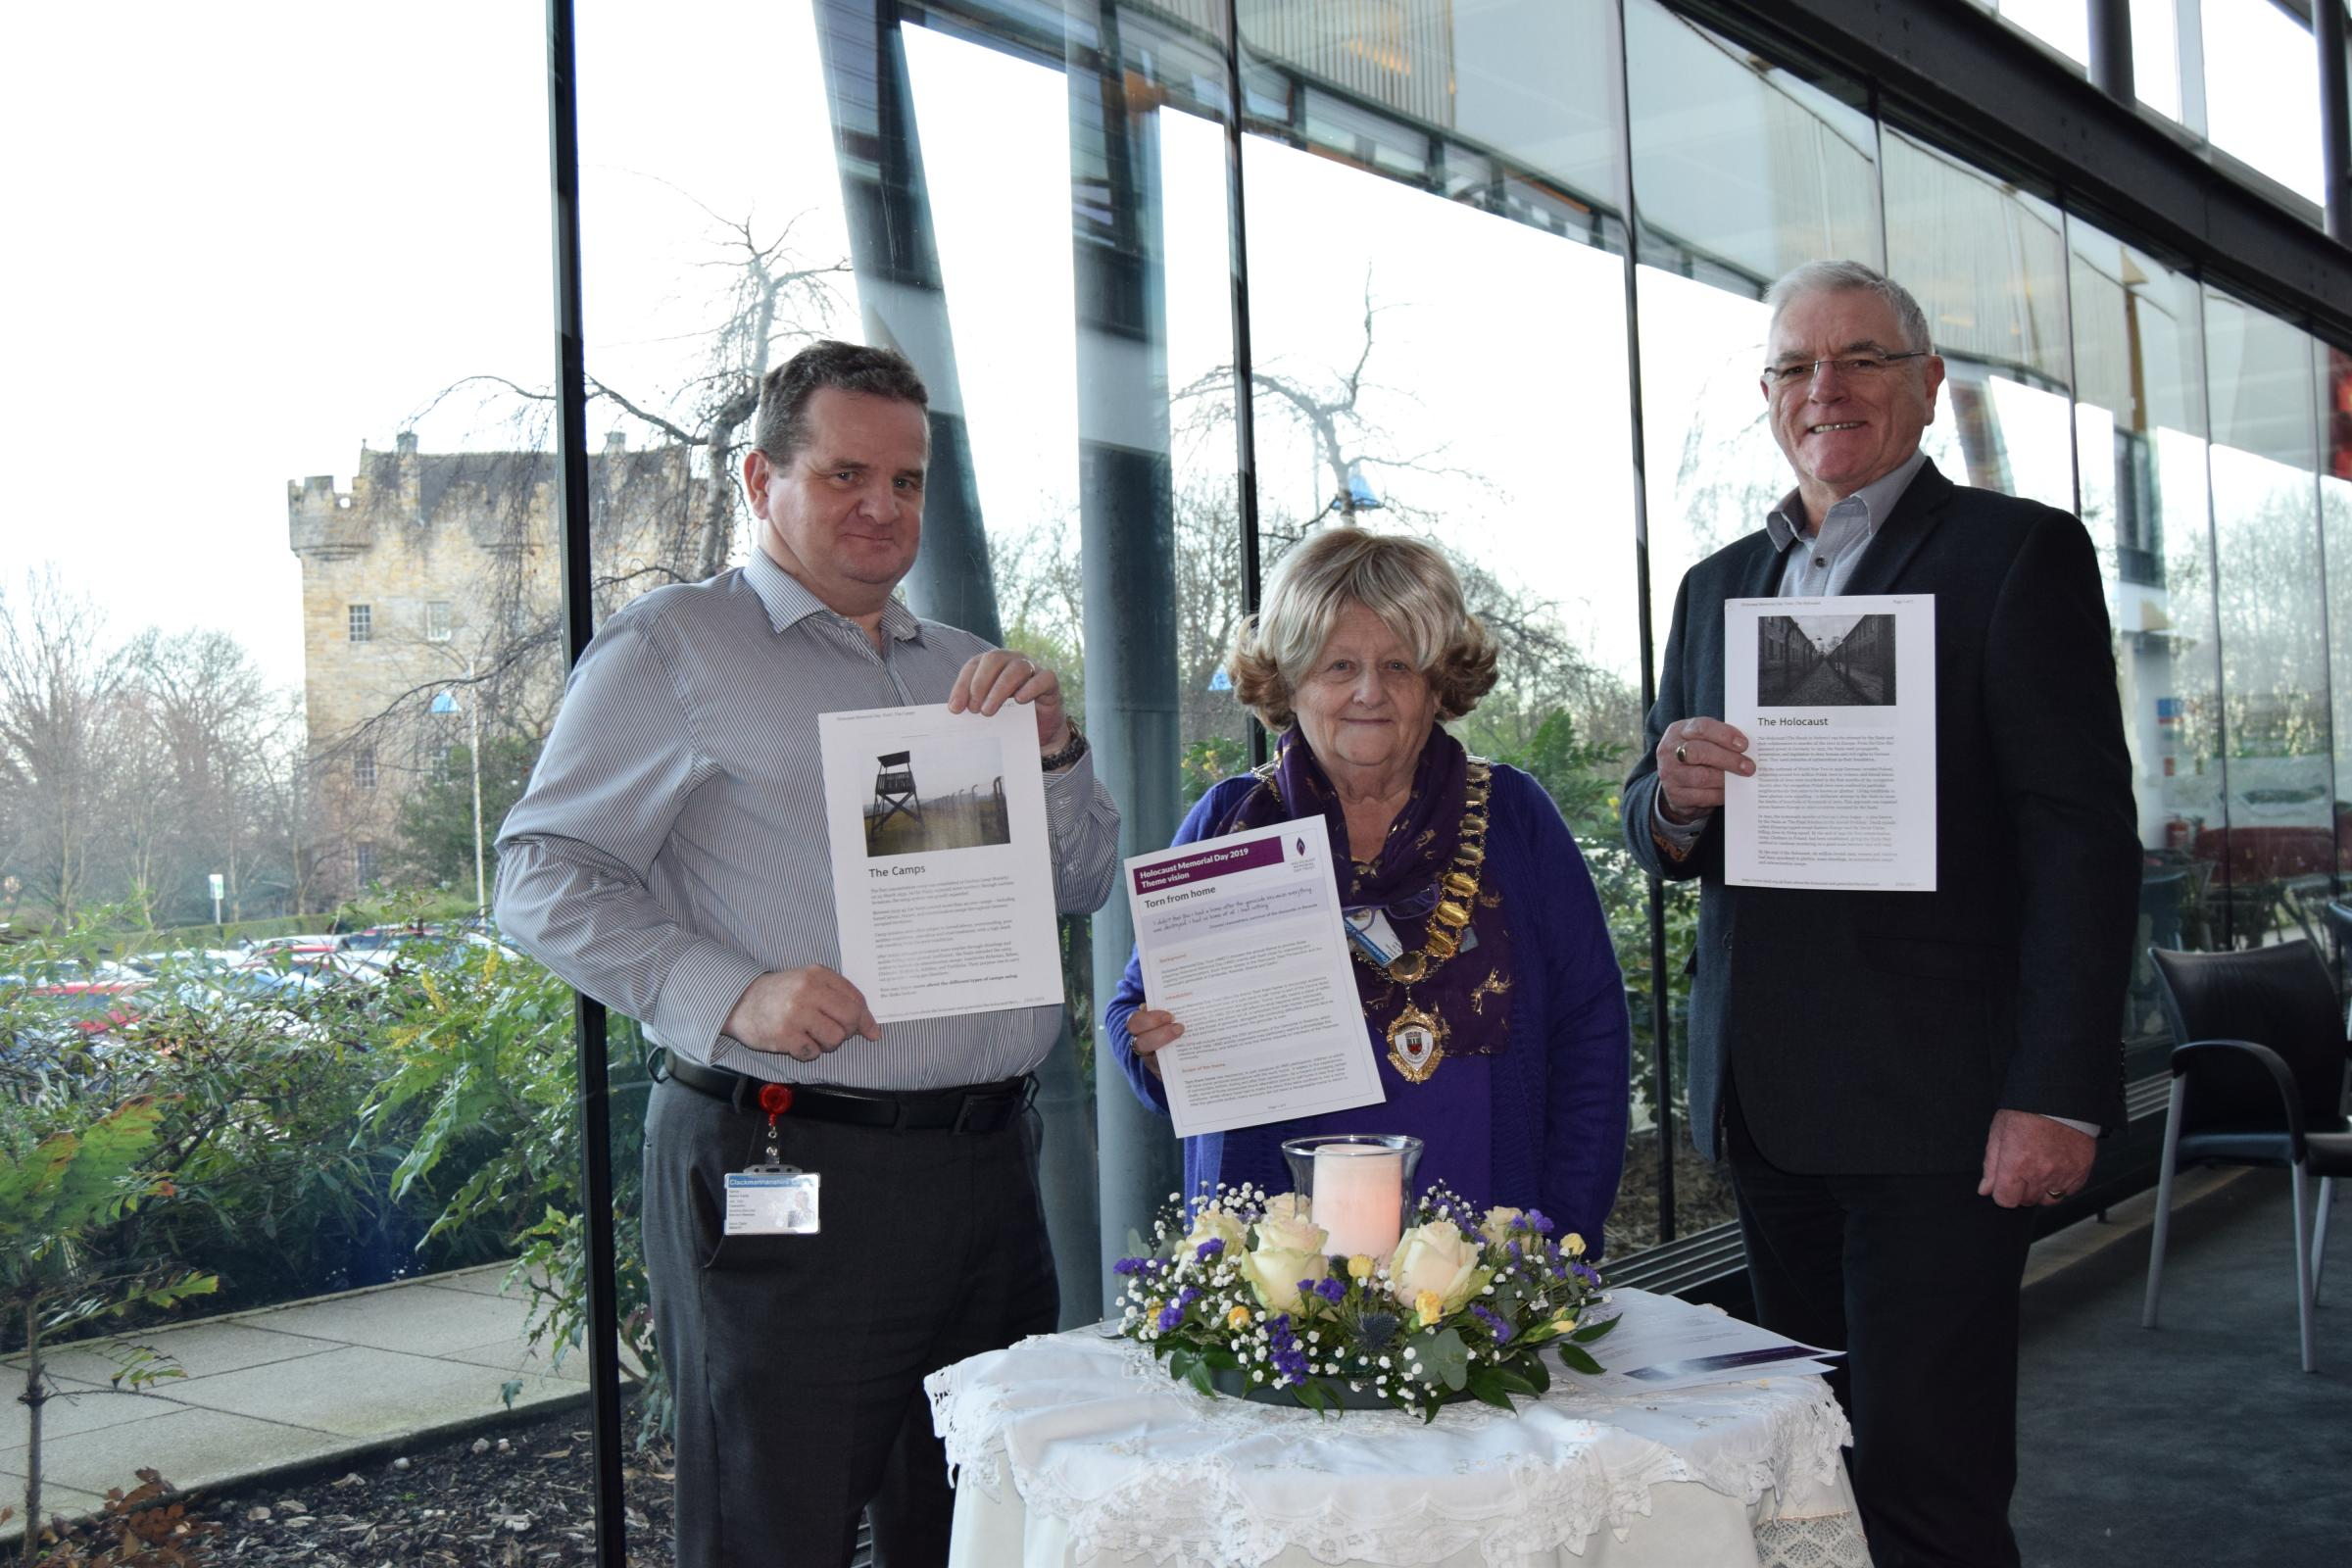 PAYING RESPECTS: Cllr Kenny Earle, Provost Tina Murphy and Cllr Les Sharp mark Holocaust Memorial Day 2019 at Clackmannanshire Council